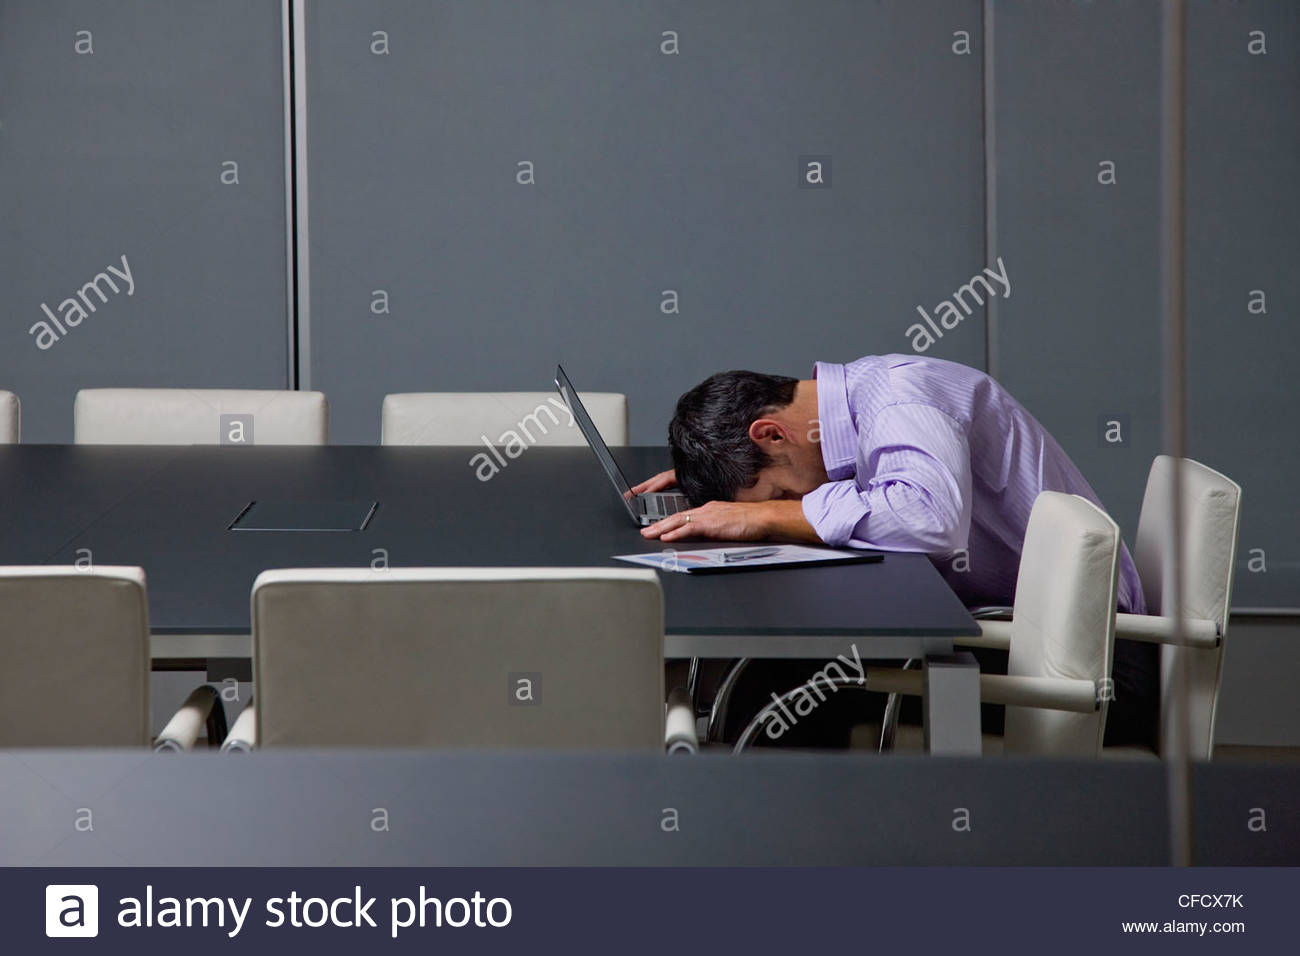 Businessman sleeping on laptop in conference room - Stock Image